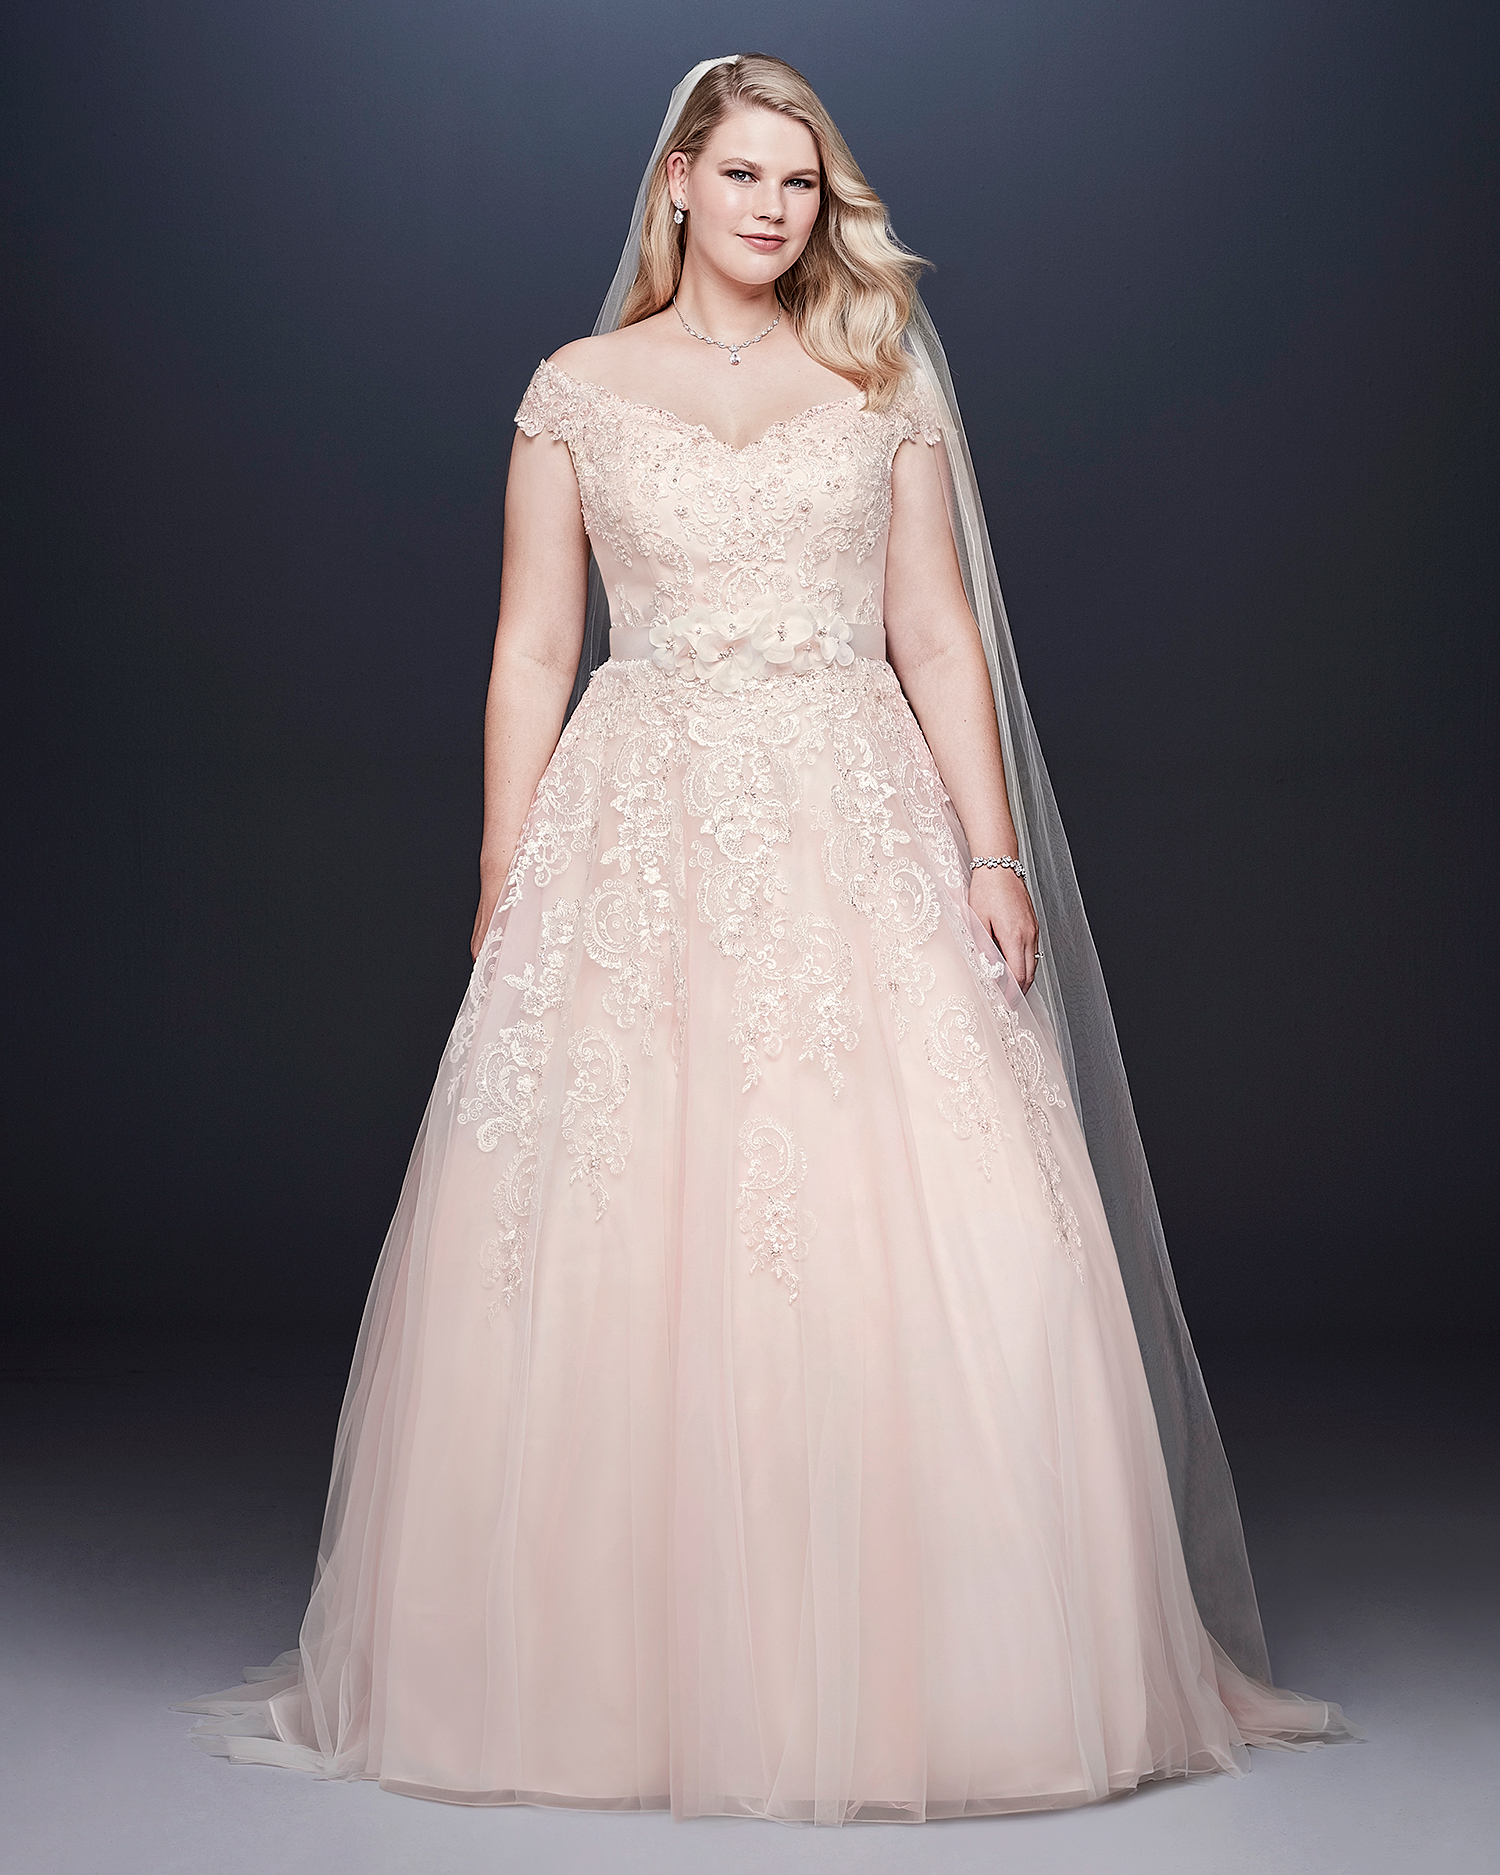 davids bridal wedding dress fall 2019 off-the-shoulder cap sleeves with belt